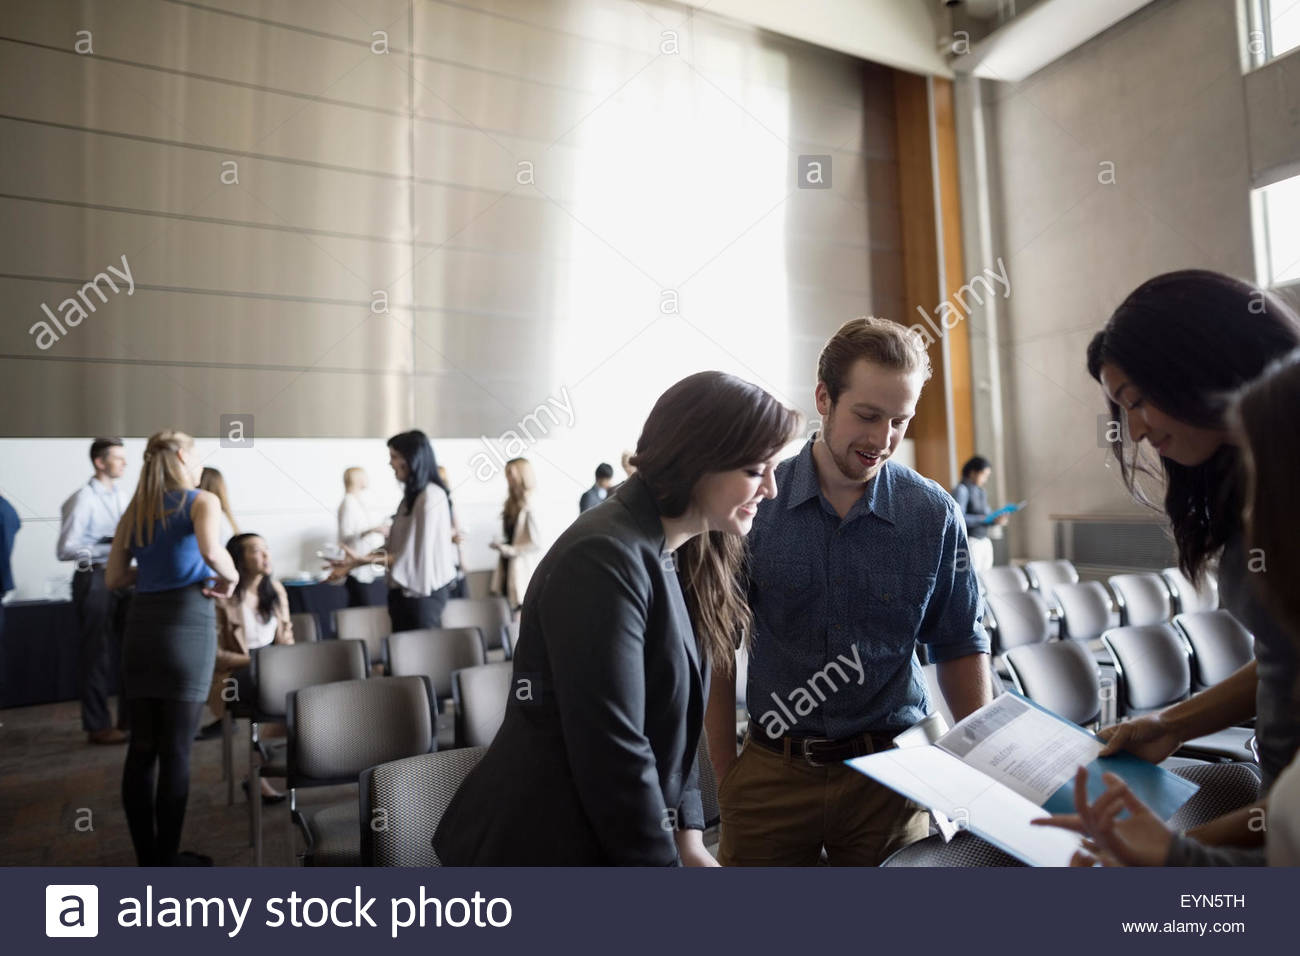 Students reviewing information in auditorium audience - Stock Image